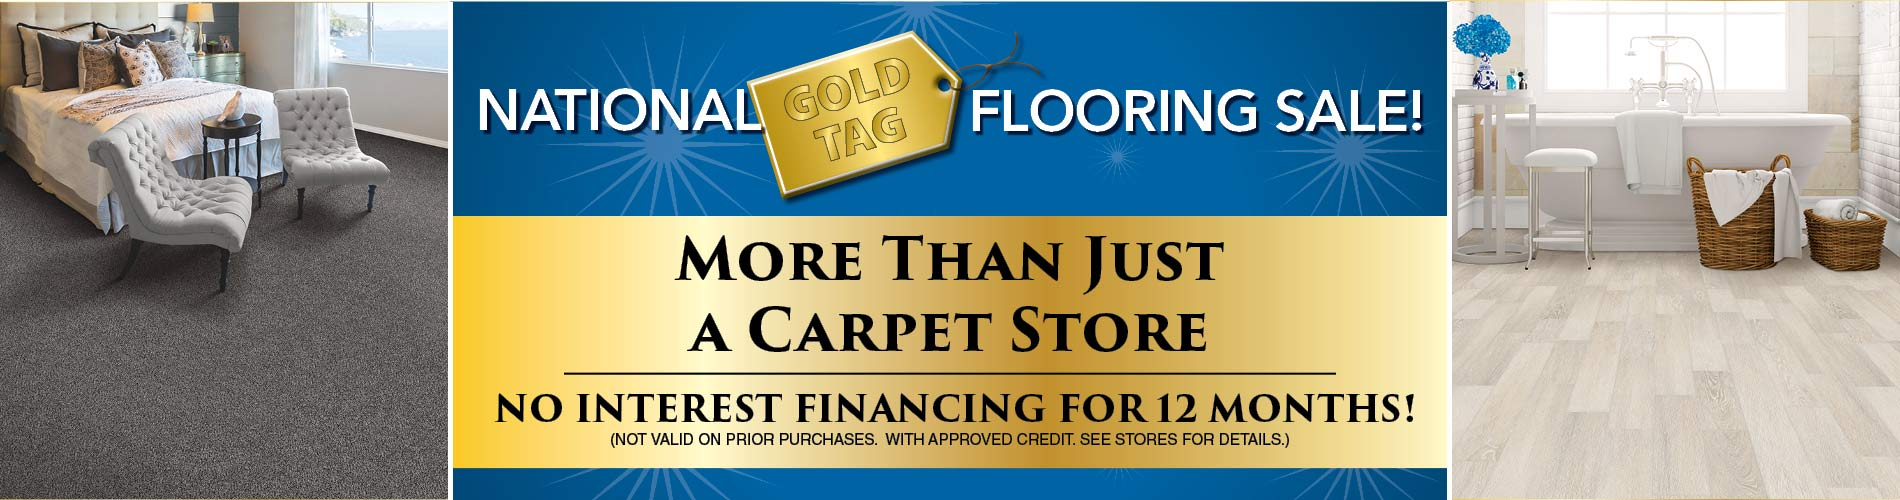 National Gold Tag Flooring Sale at Abbey Carpets Unlimited Design Center